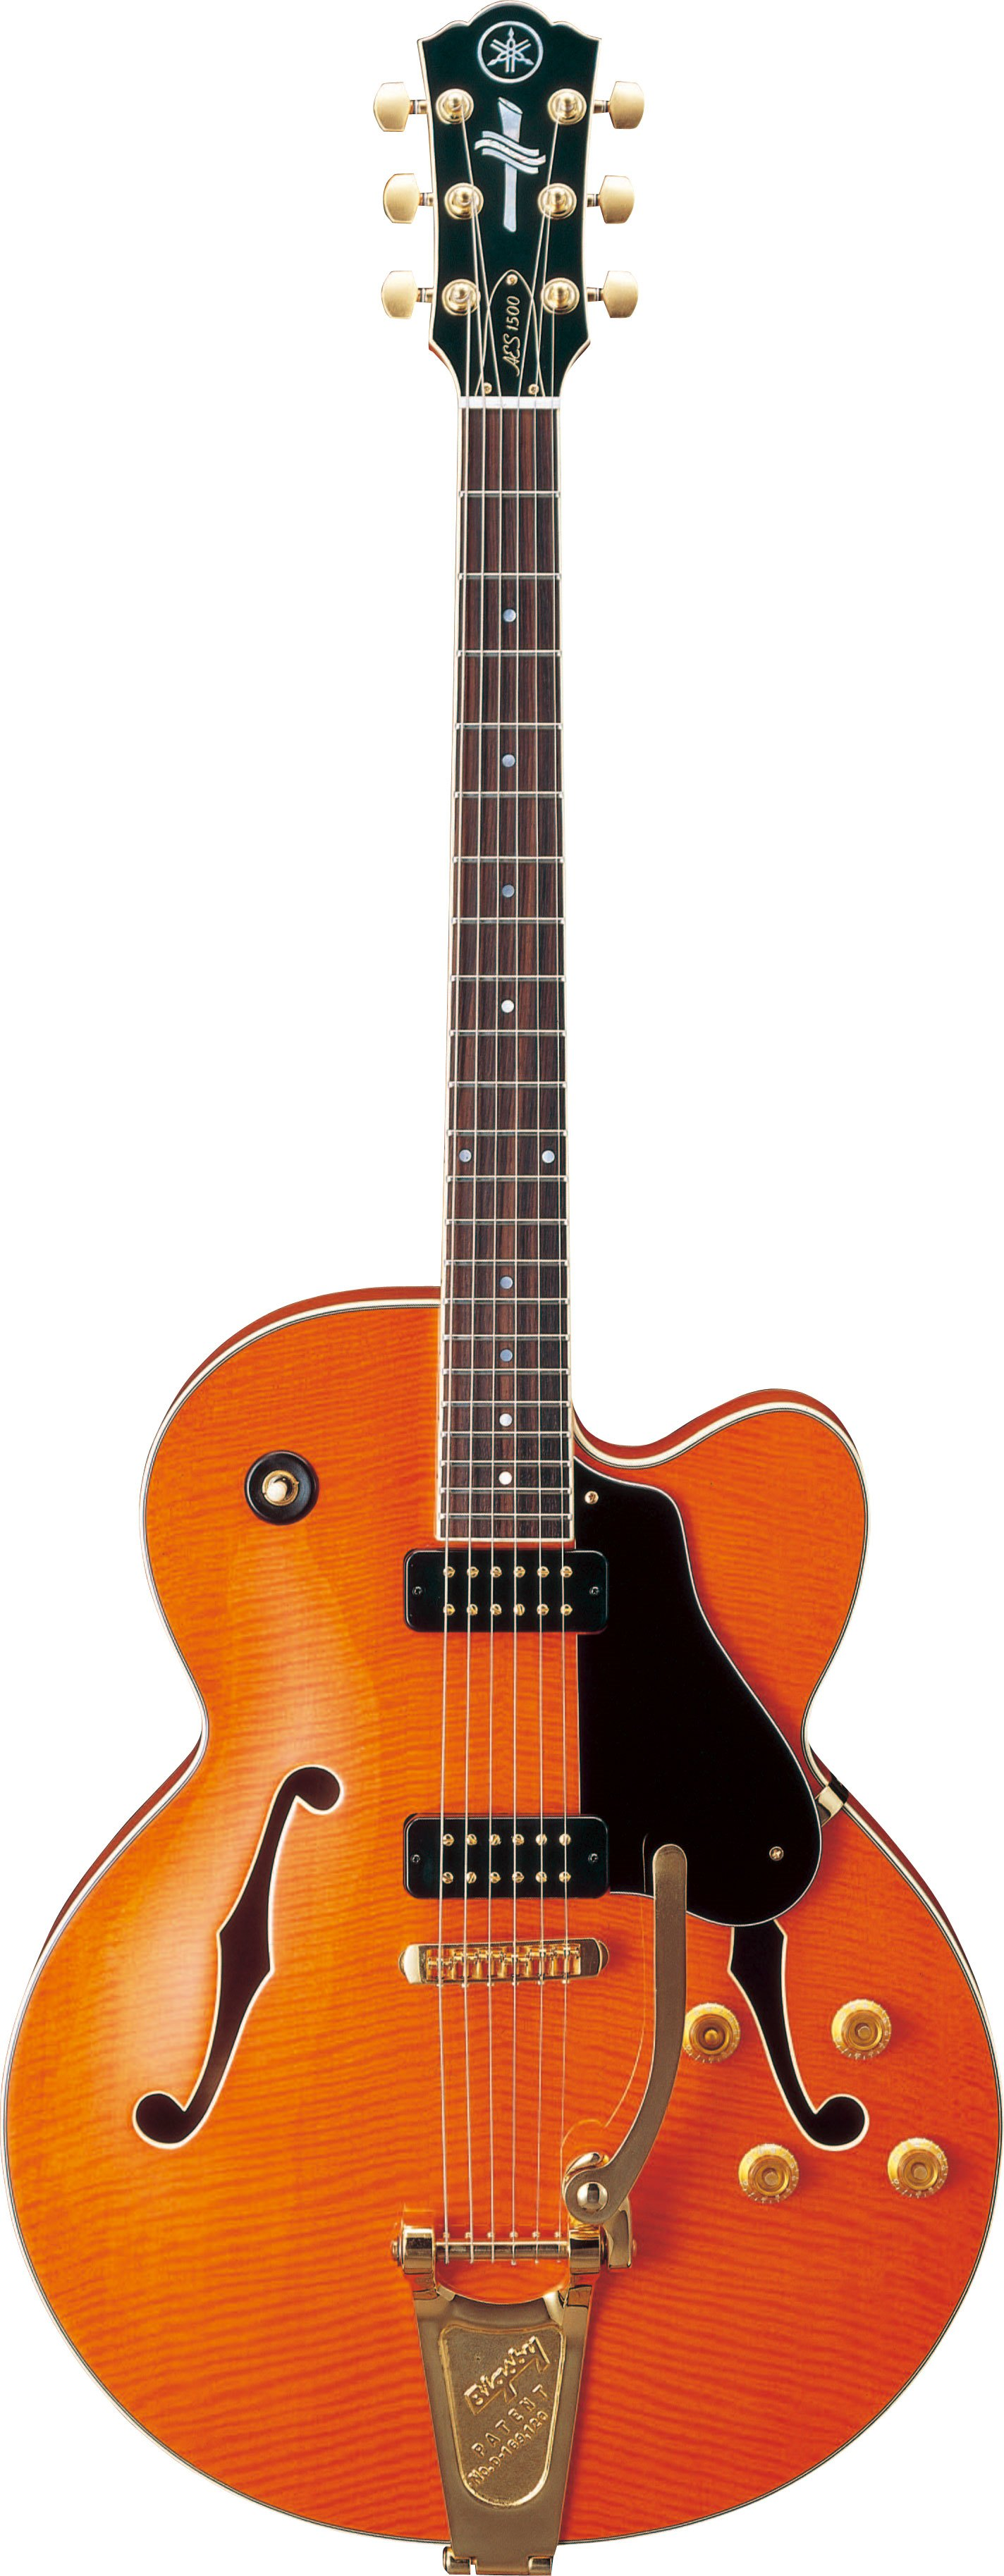 hight resolution of aes1500b aes semi hollow series archtop electric guitar with bigsby tremolo